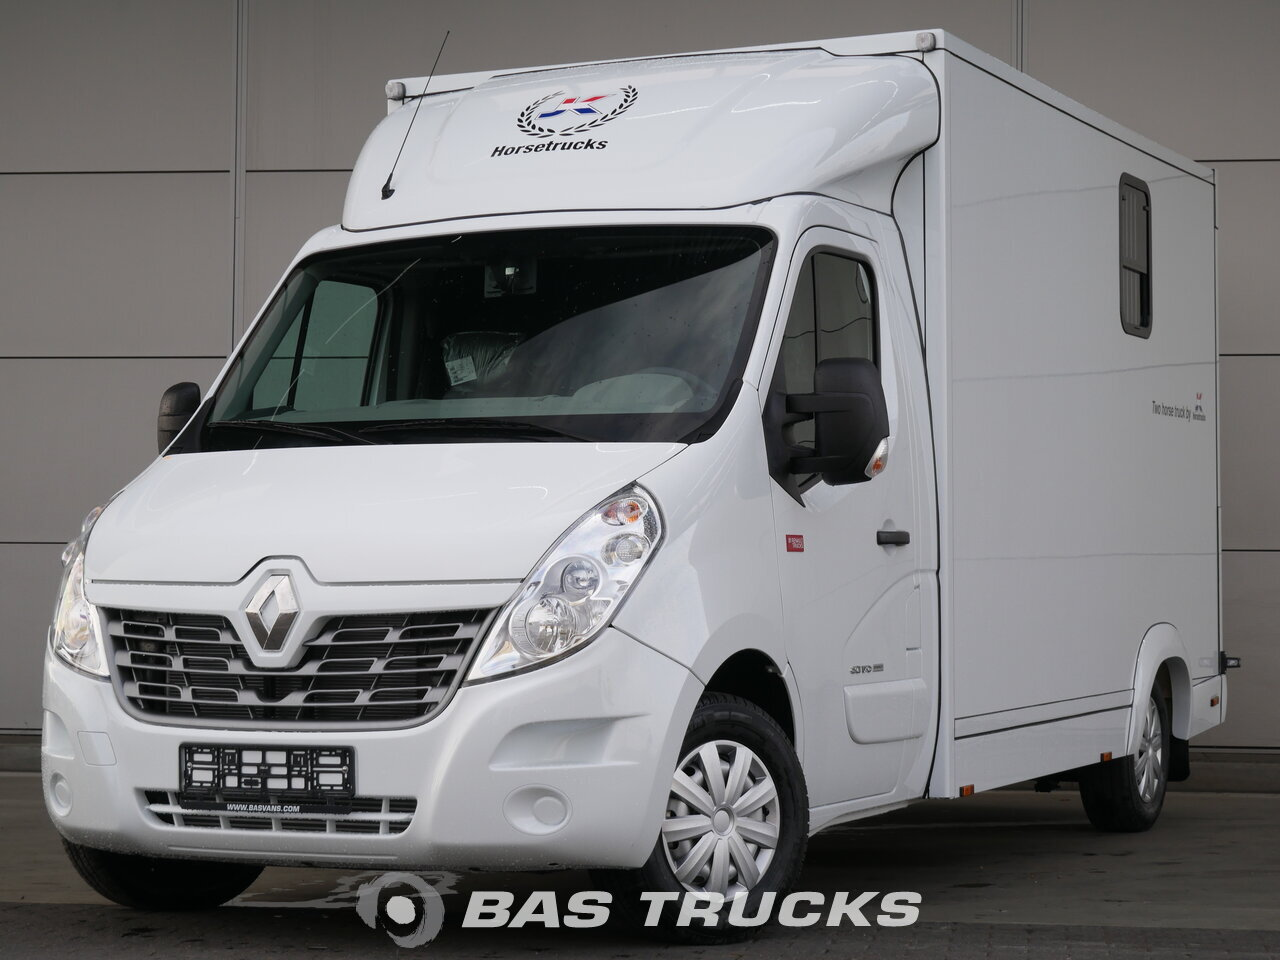 renault master lcv euro 0 39900 bas trucks. Black Bedroom Furniture Sets. Home Design Ideas